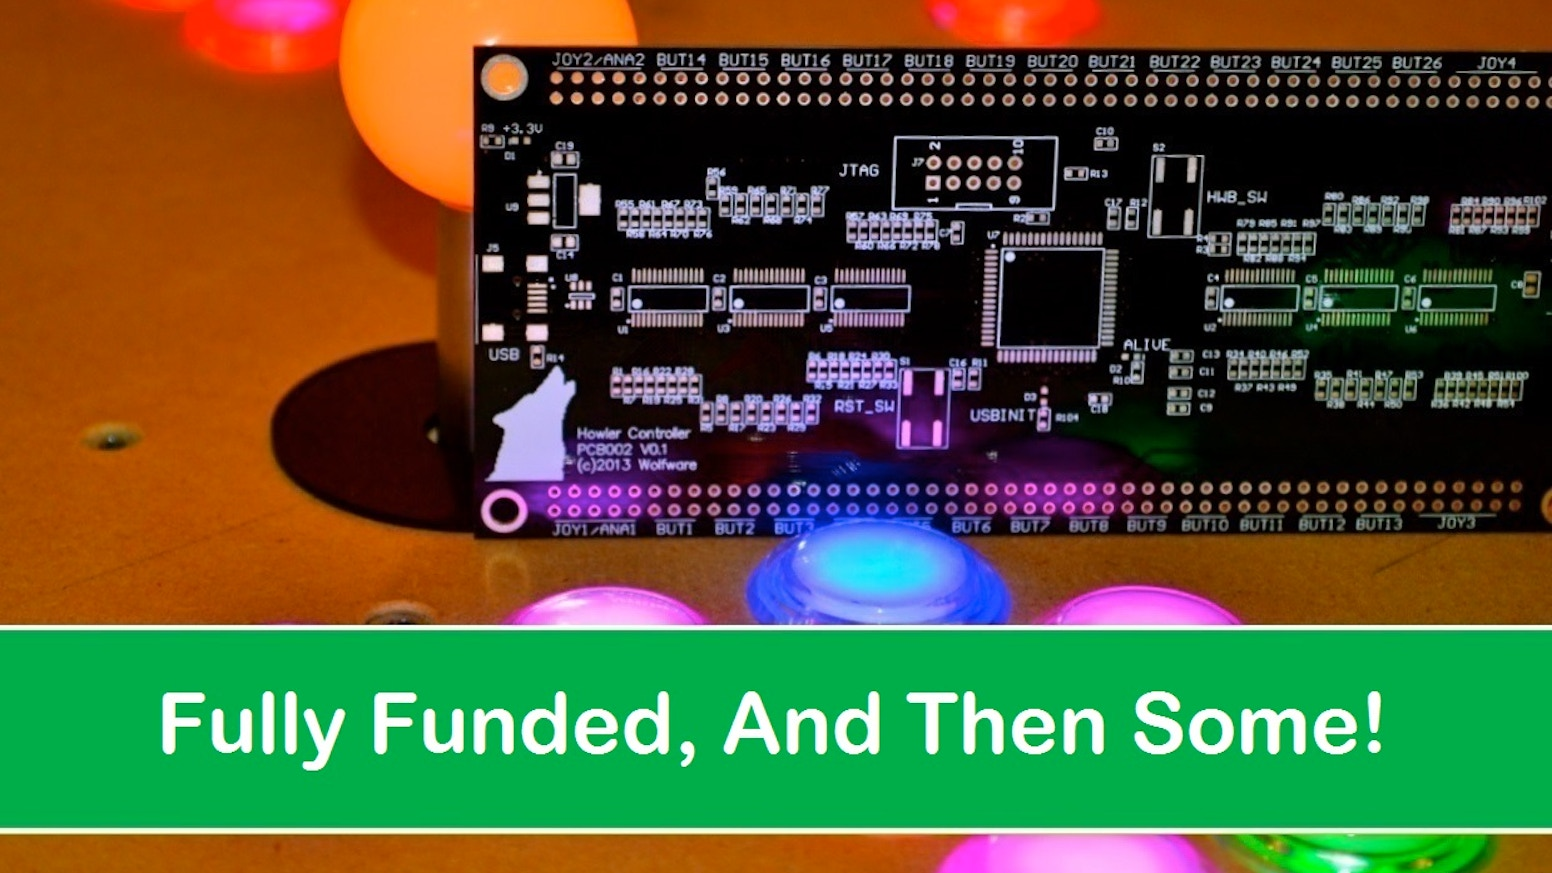 Howler Open Source Arcade Controller By Josh Wolf Kickstarter Pic16f628 Rgb Led Control Circuit Schematic The All In One Keyboard Mouse Joystick Drive Accelerometer